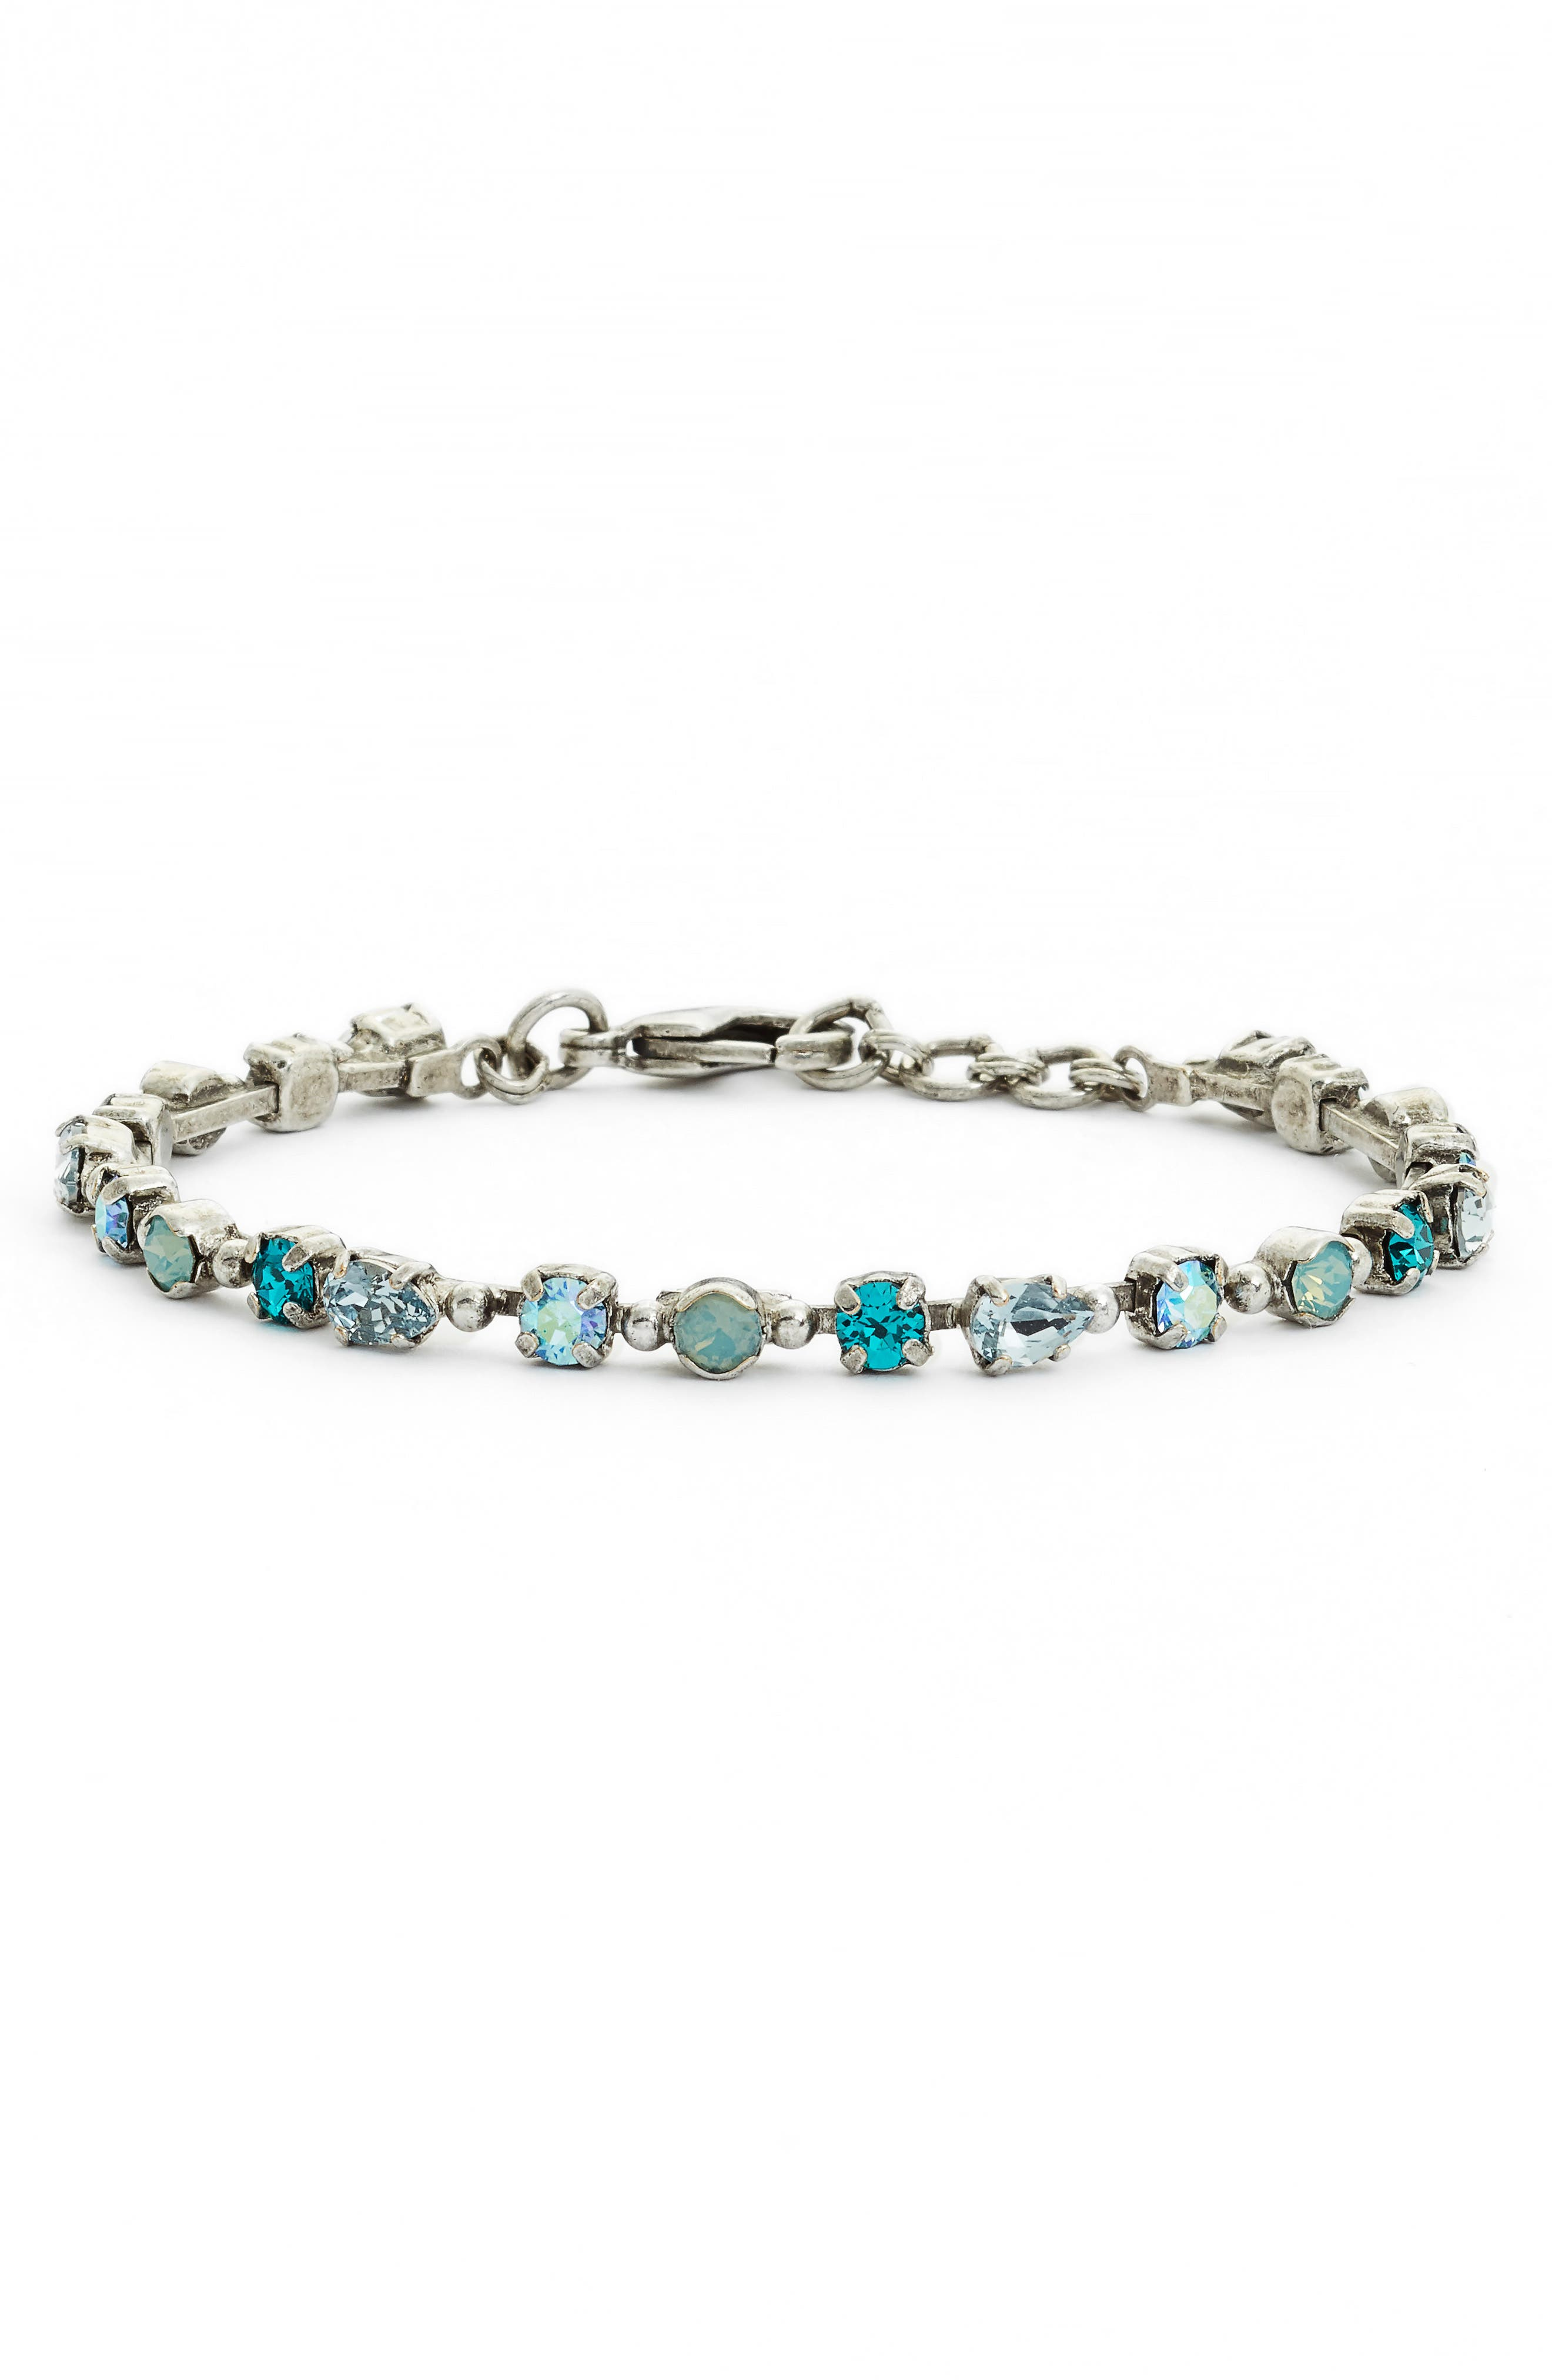 Straight & Narrow Crystal Tennis Bracelet,                             Main thumbnail 1, color,                             BLUE-GREEN